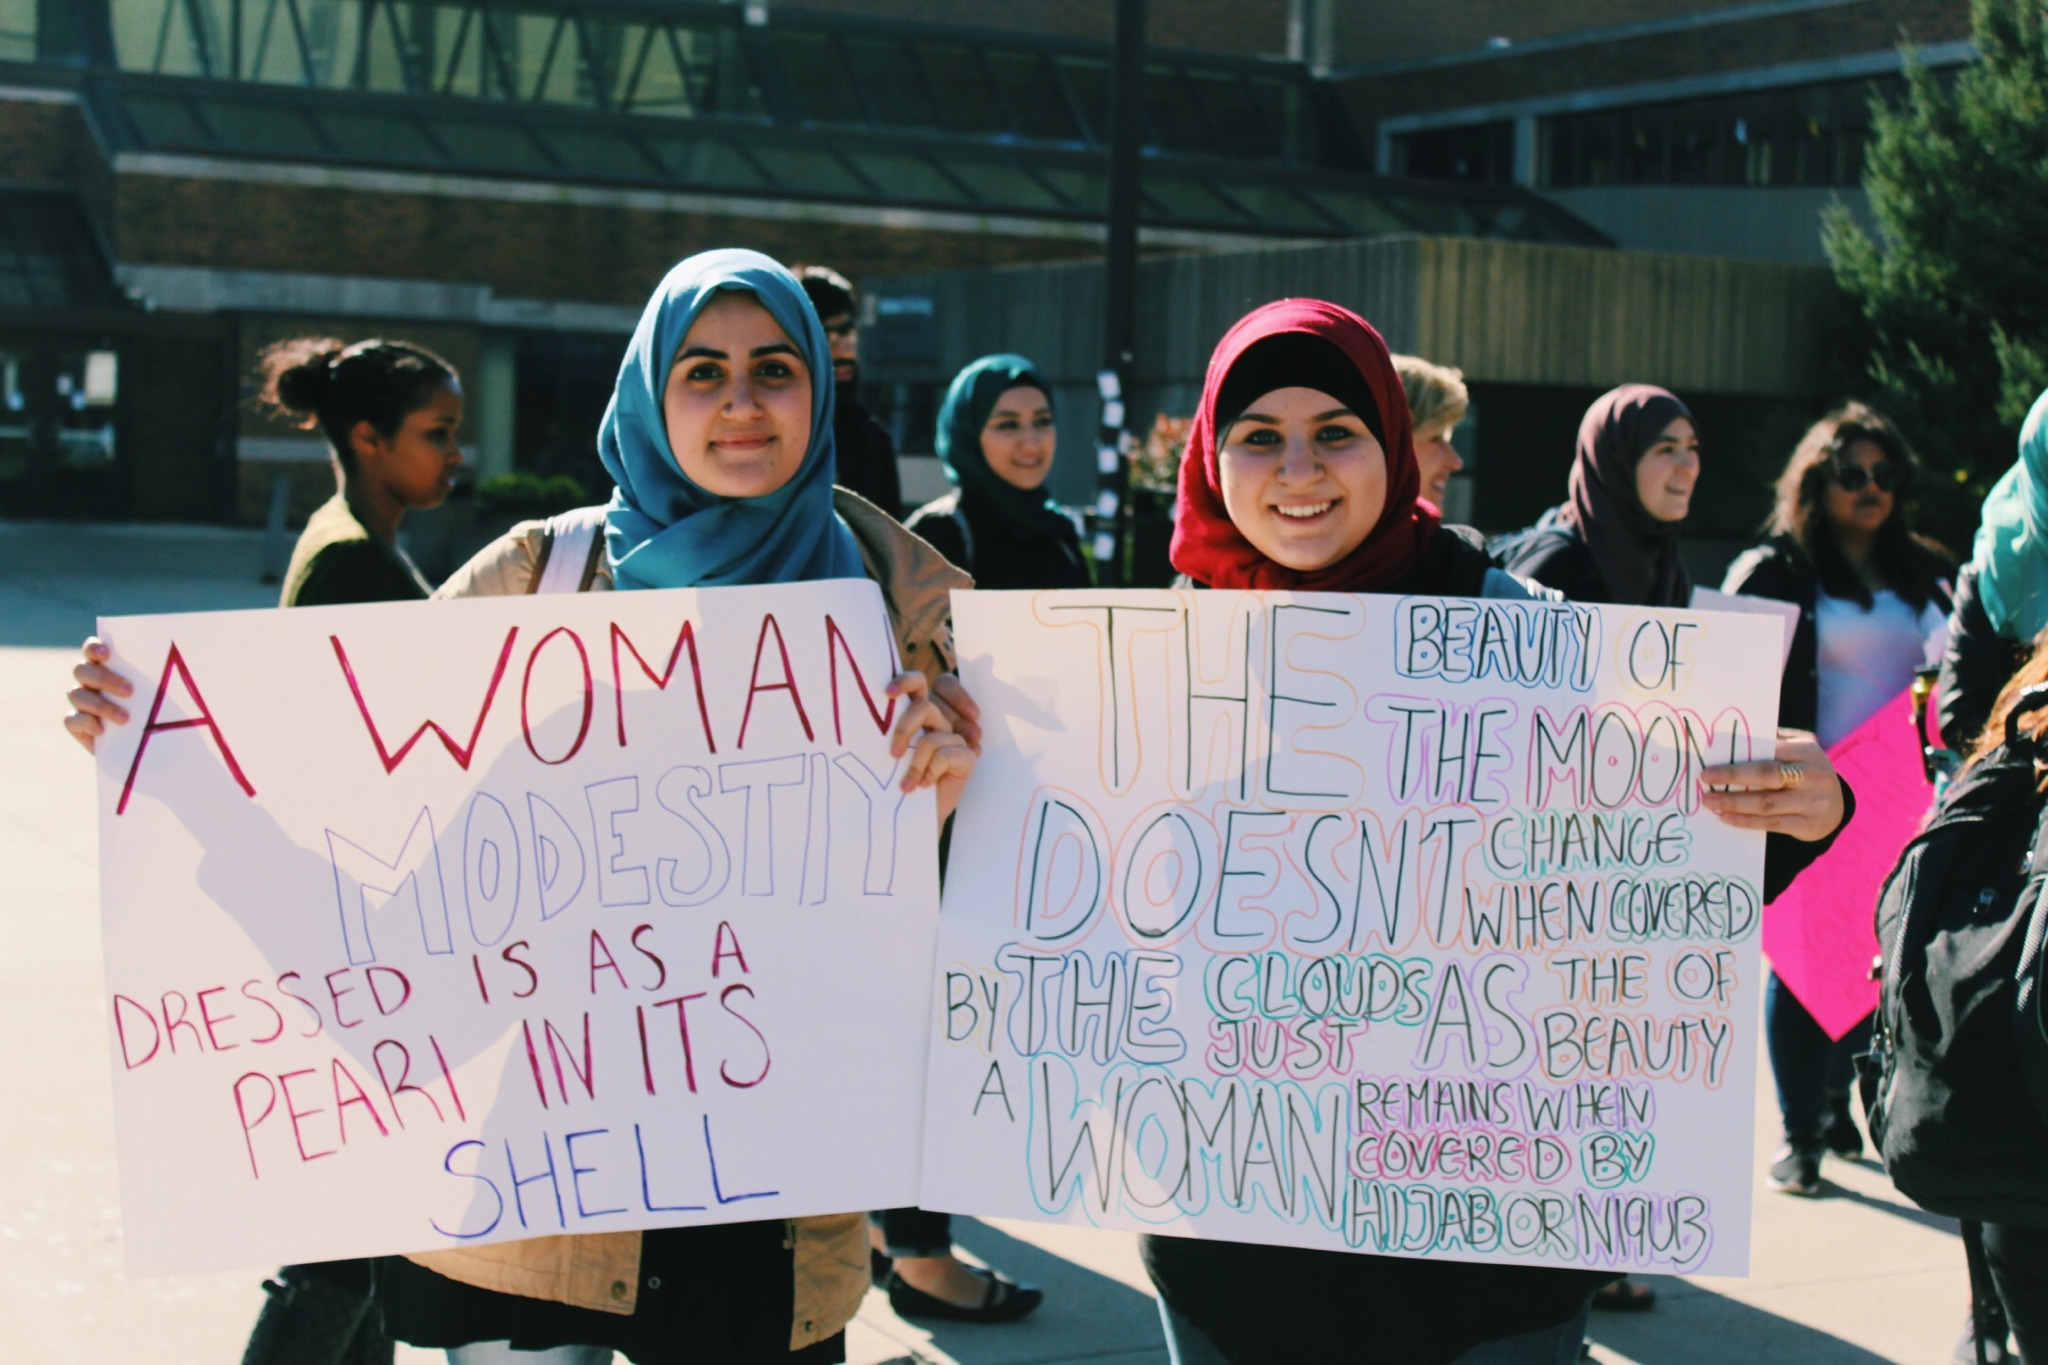 The Hijab Unity Walk. It was a march around UWM's campus to support Muslim women's right to wear the hijab. (Picture by Sabrina Johnkins)